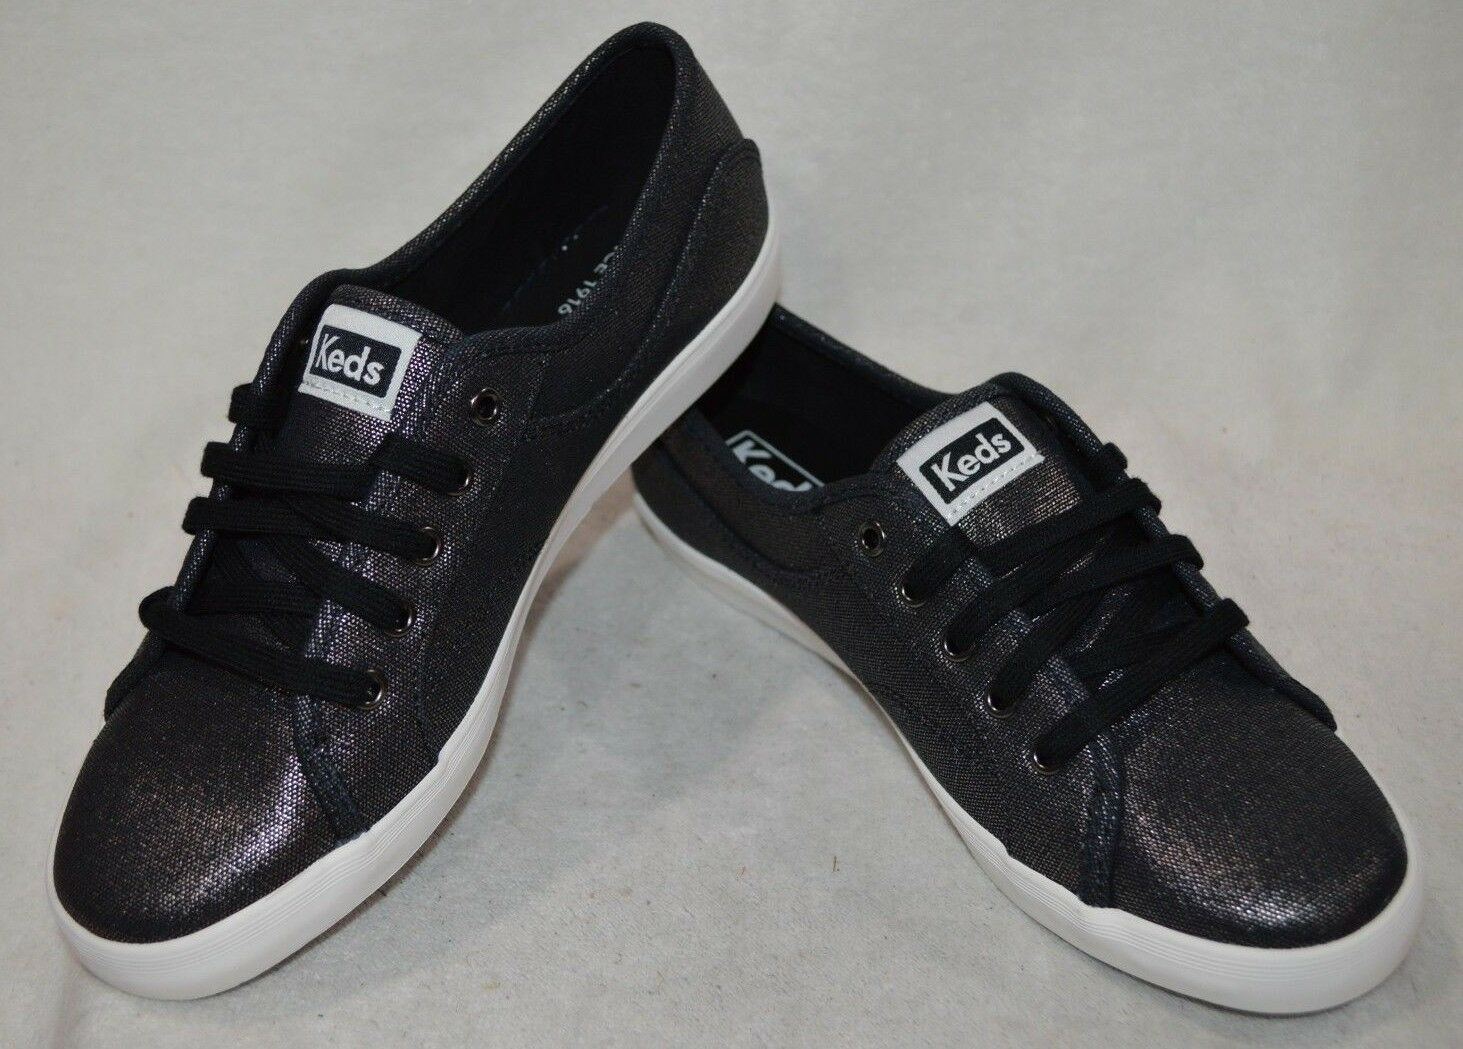 Keds Womens Coursa Metallic Black Sneaker- Size 6.5/7/7.5/9.5 NWB WF57864